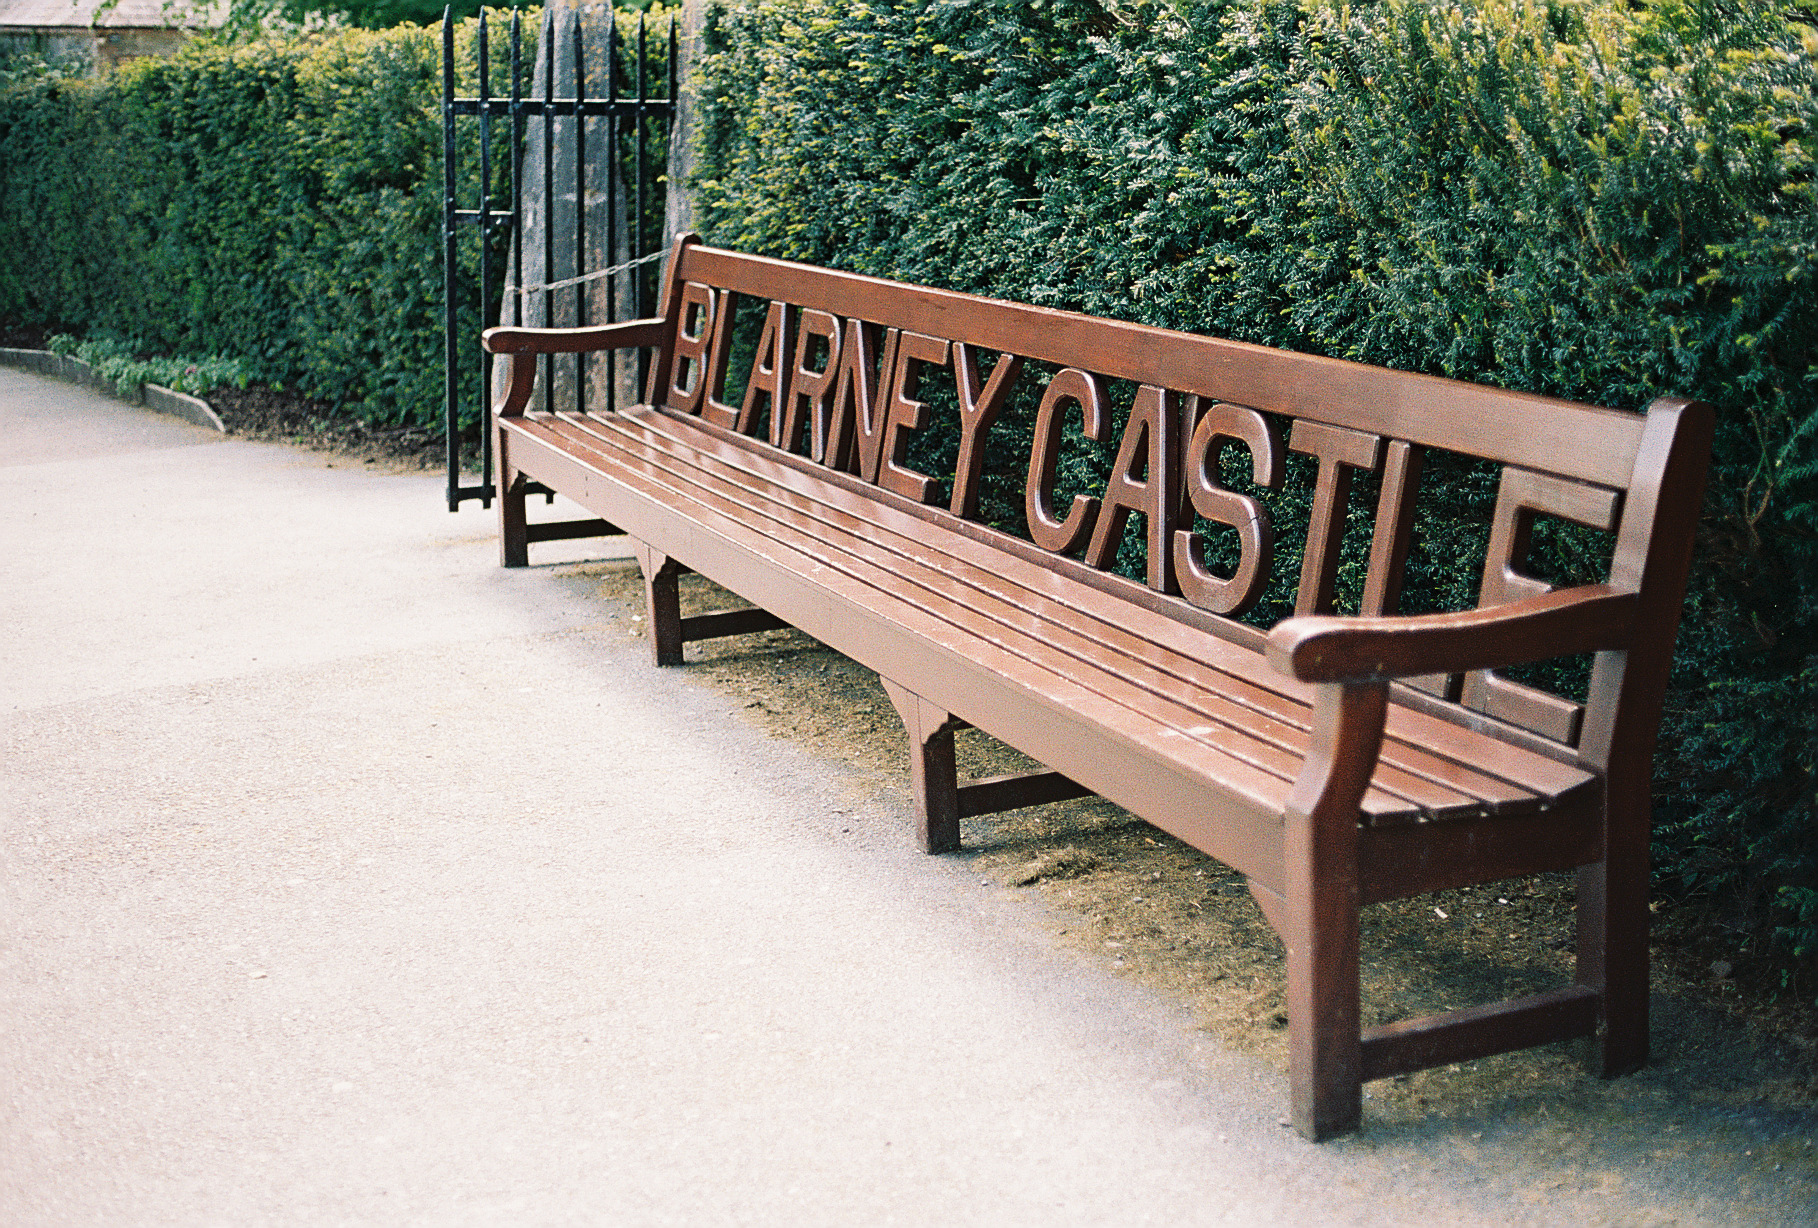 blarney-castle-bench-ireland-european-honeymoon